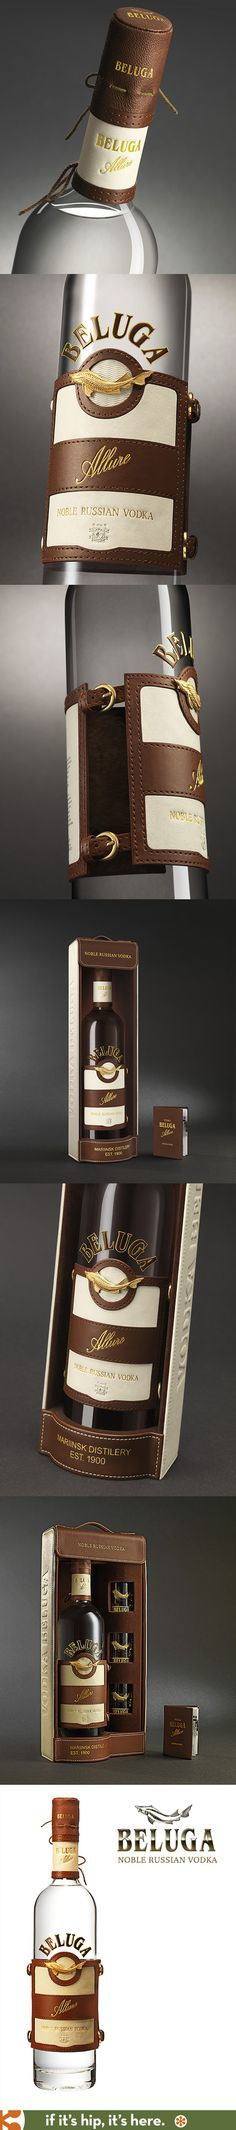 Beluga's Allure Vodka has a leather label and cap with gold buckle accents inspired by the sport of Polo and comes in lovely leather packaged gift sets. spirit mxm